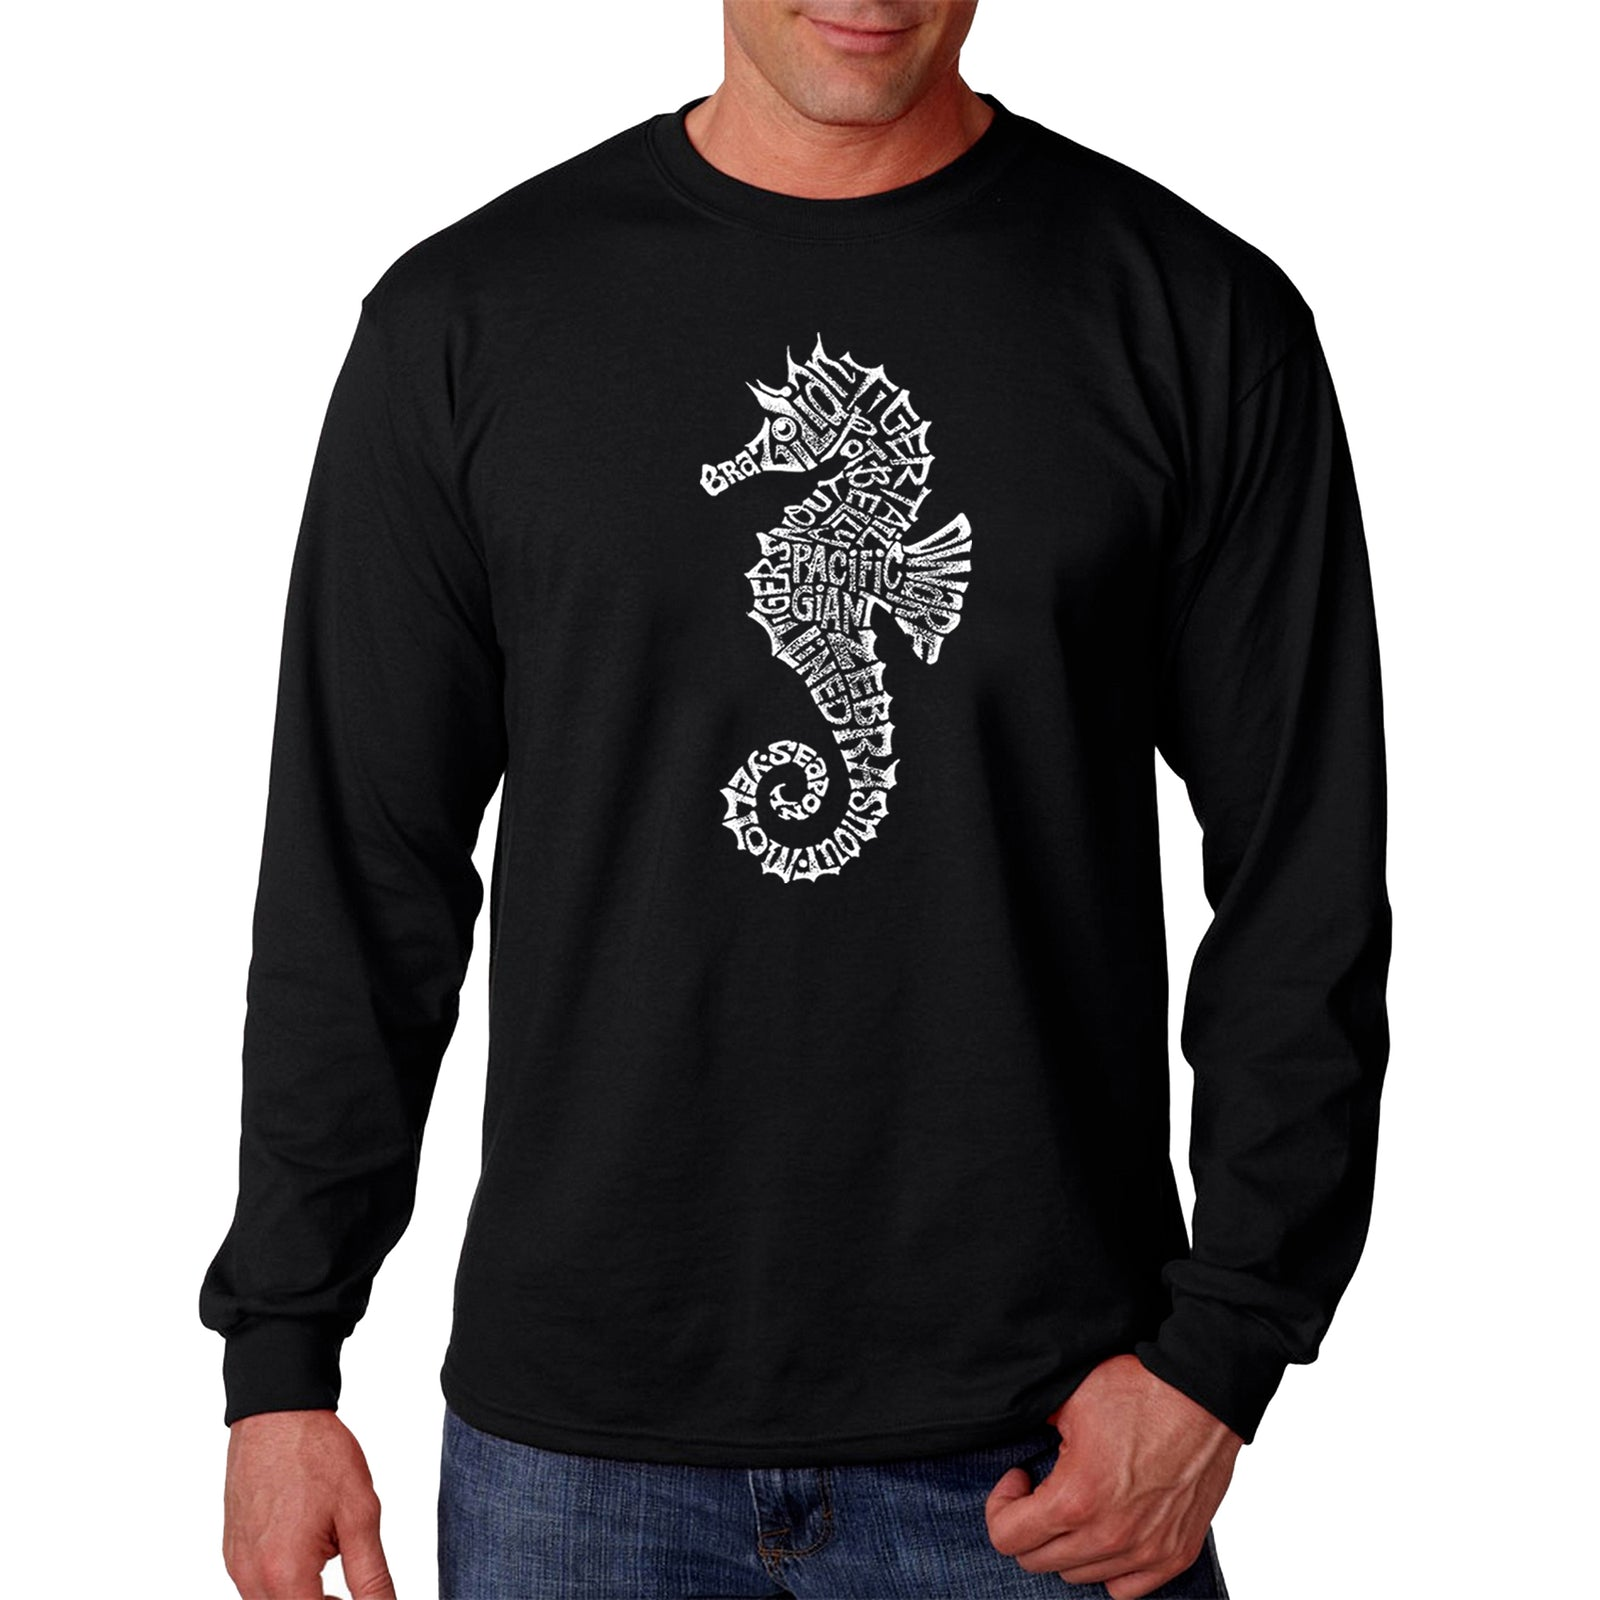 Men's Word Art Long Sleeve T-shirt - Types of Seahorse